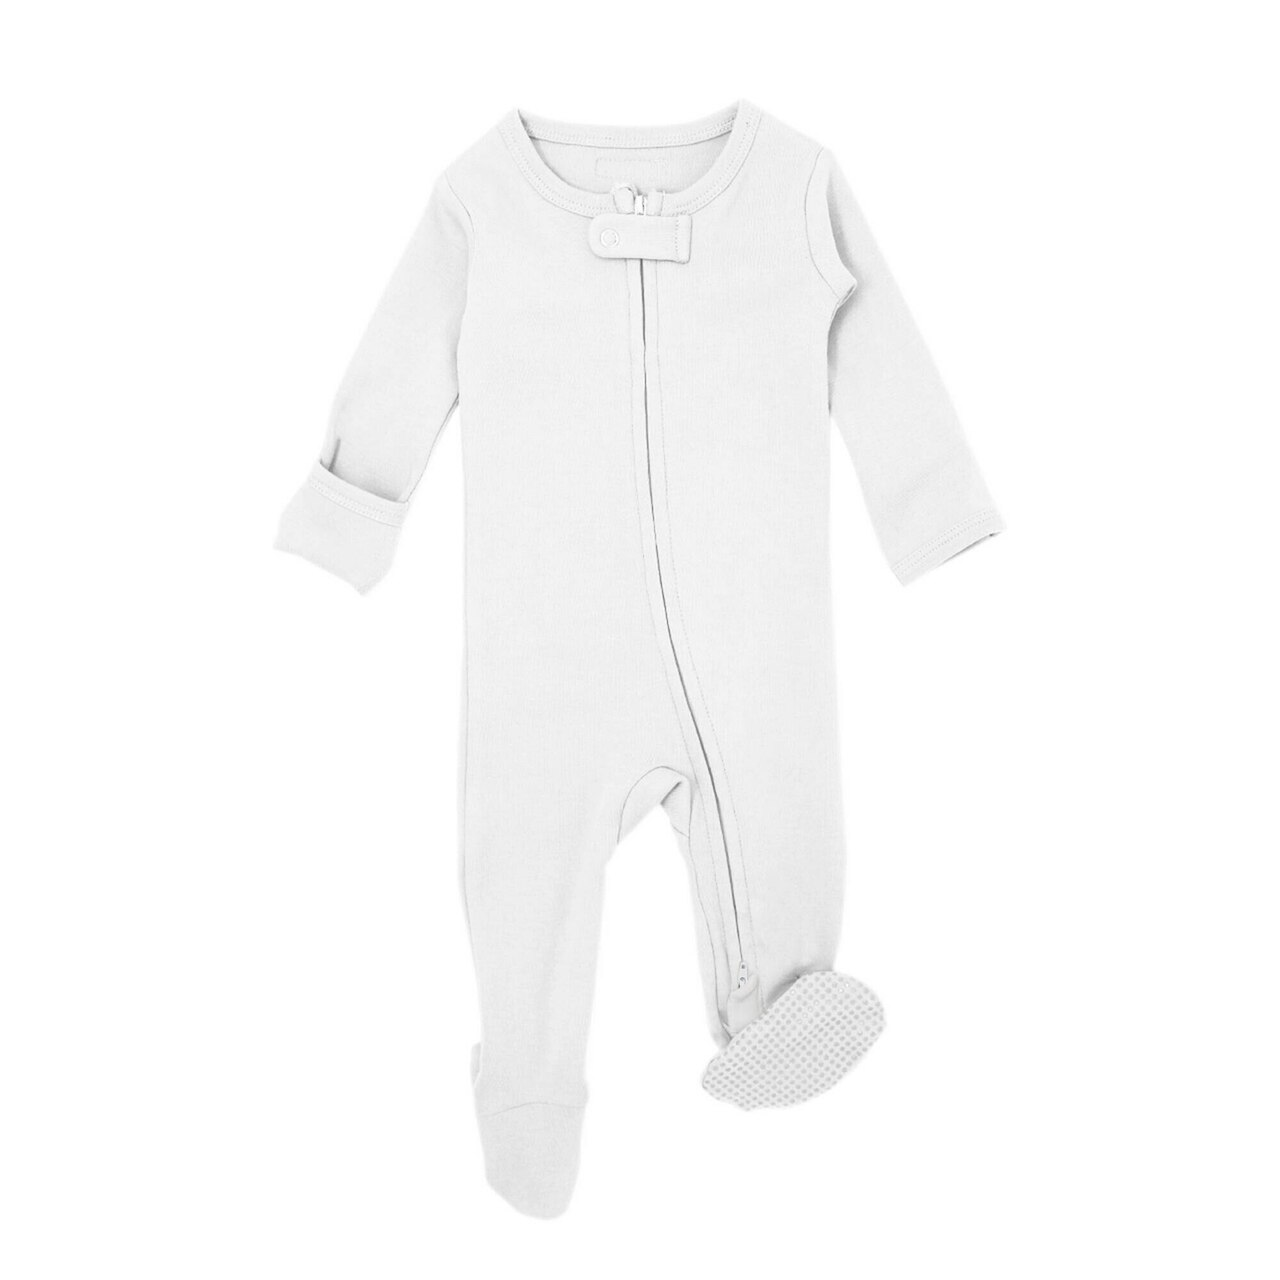 Organic Zipper Footed Overall in White, Flat